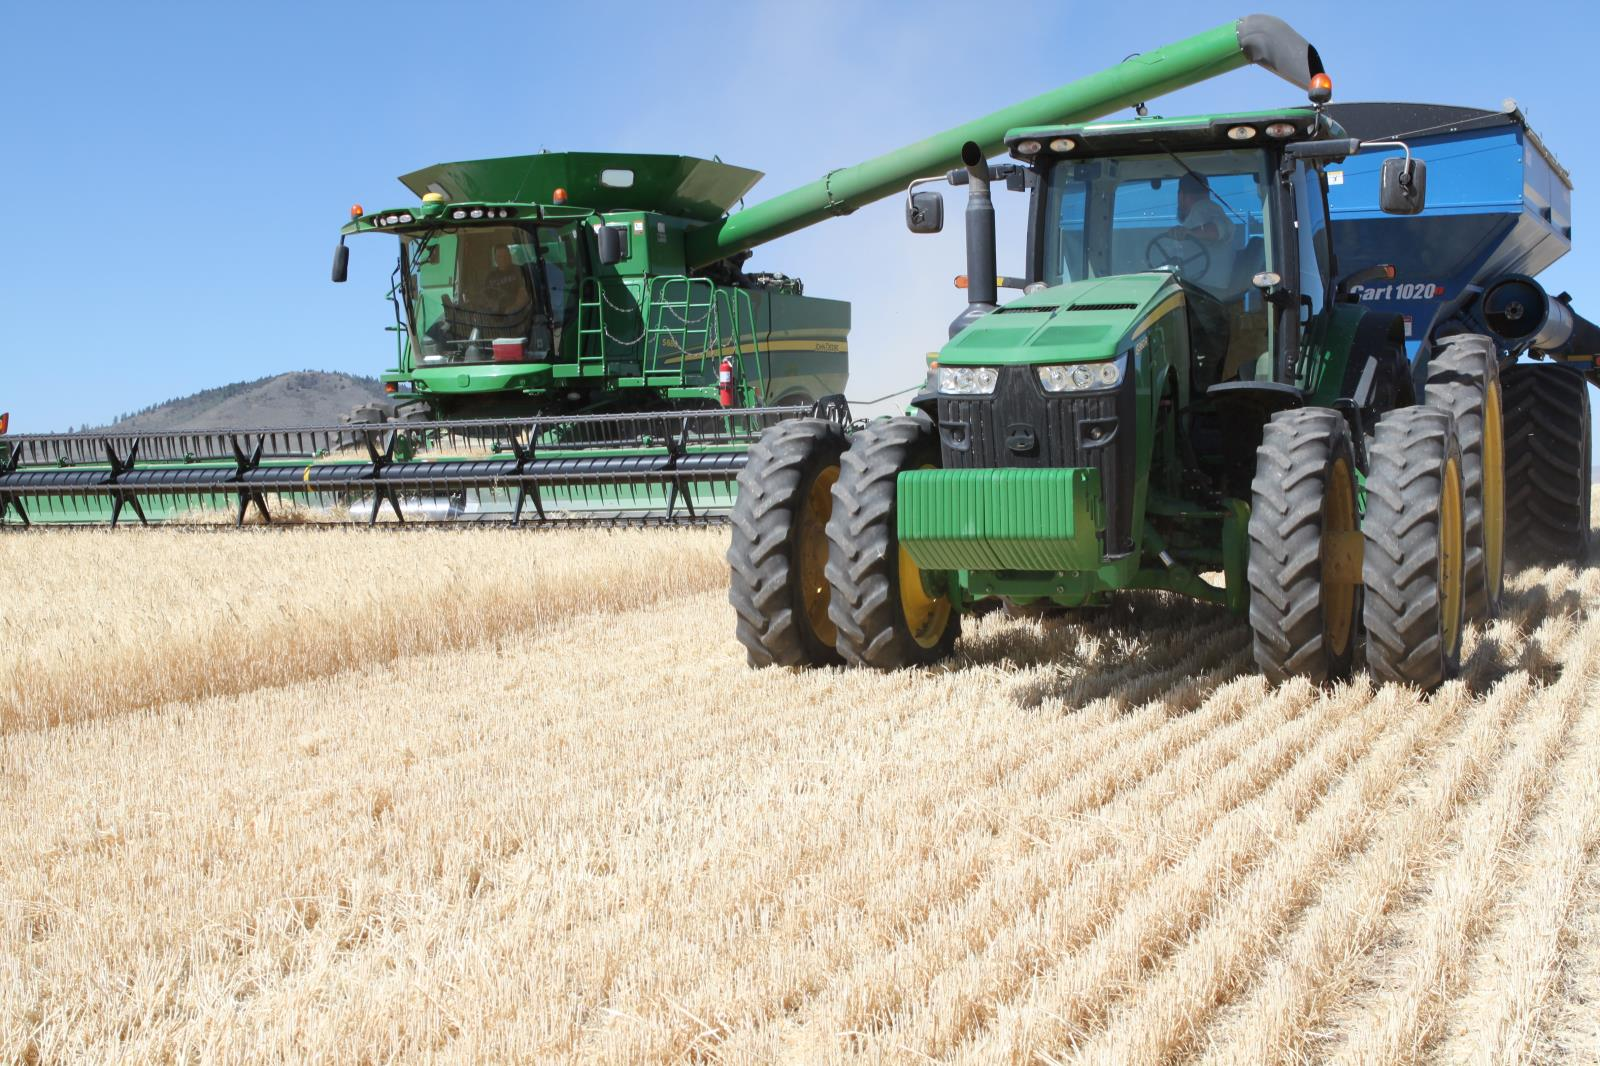 Barley is harvested in a field near Soda Springs in September. USDA's second round of coronavirus farm relief payments are expected to help more Idaho farmers, including barley producers.